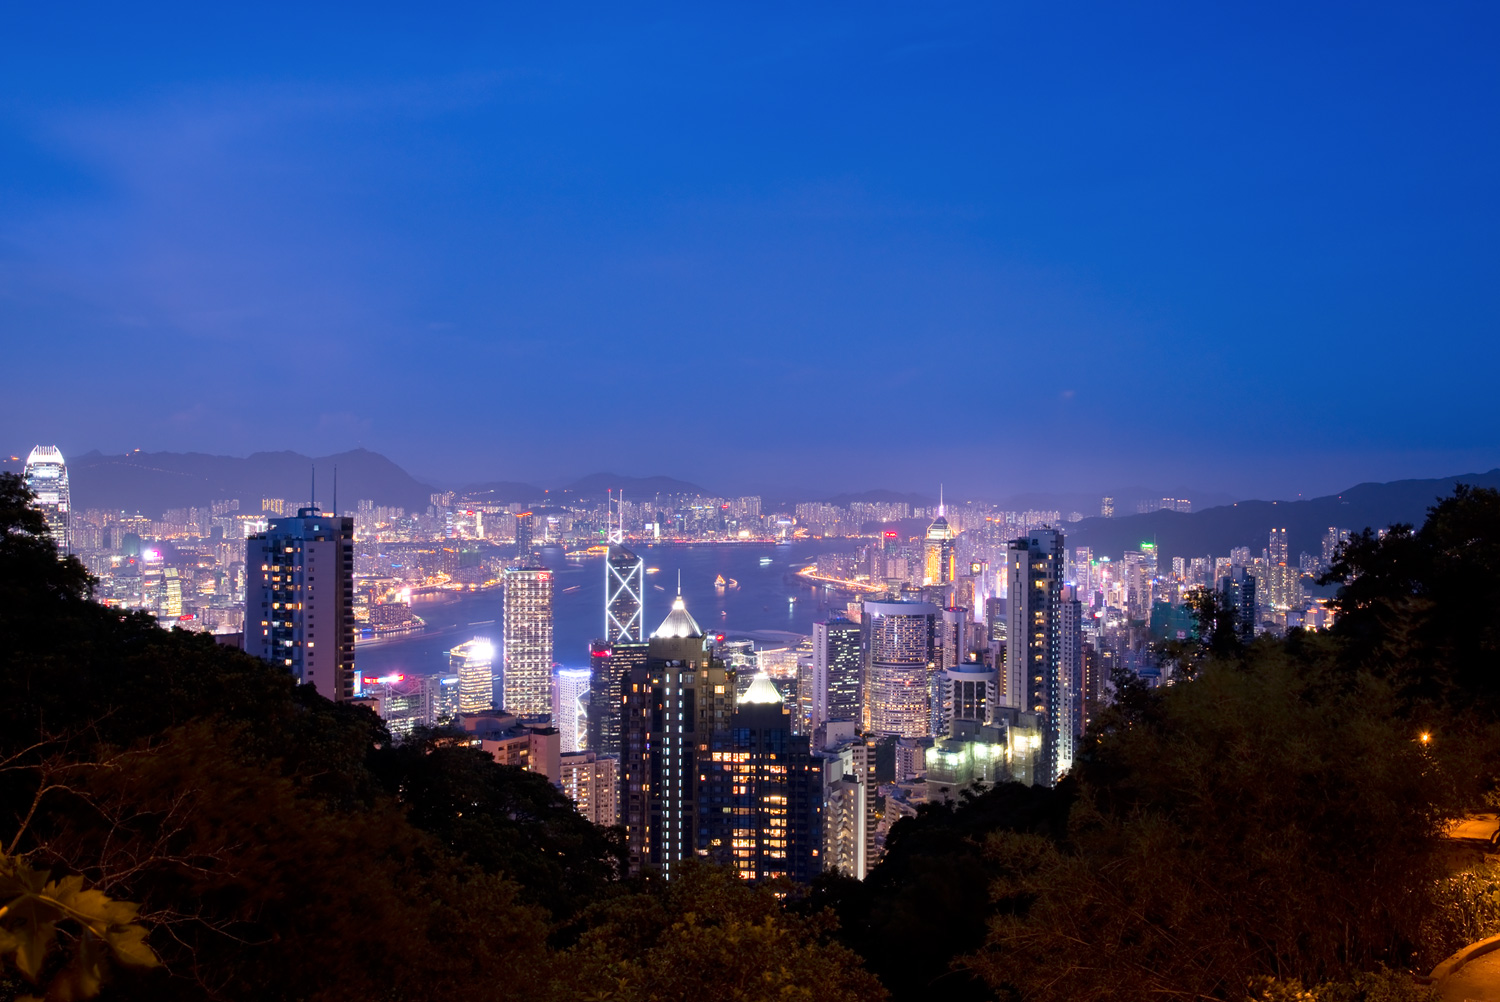 Hk 0029 - How to Search Potential Cityscape Photography Spots Online Before Traveling